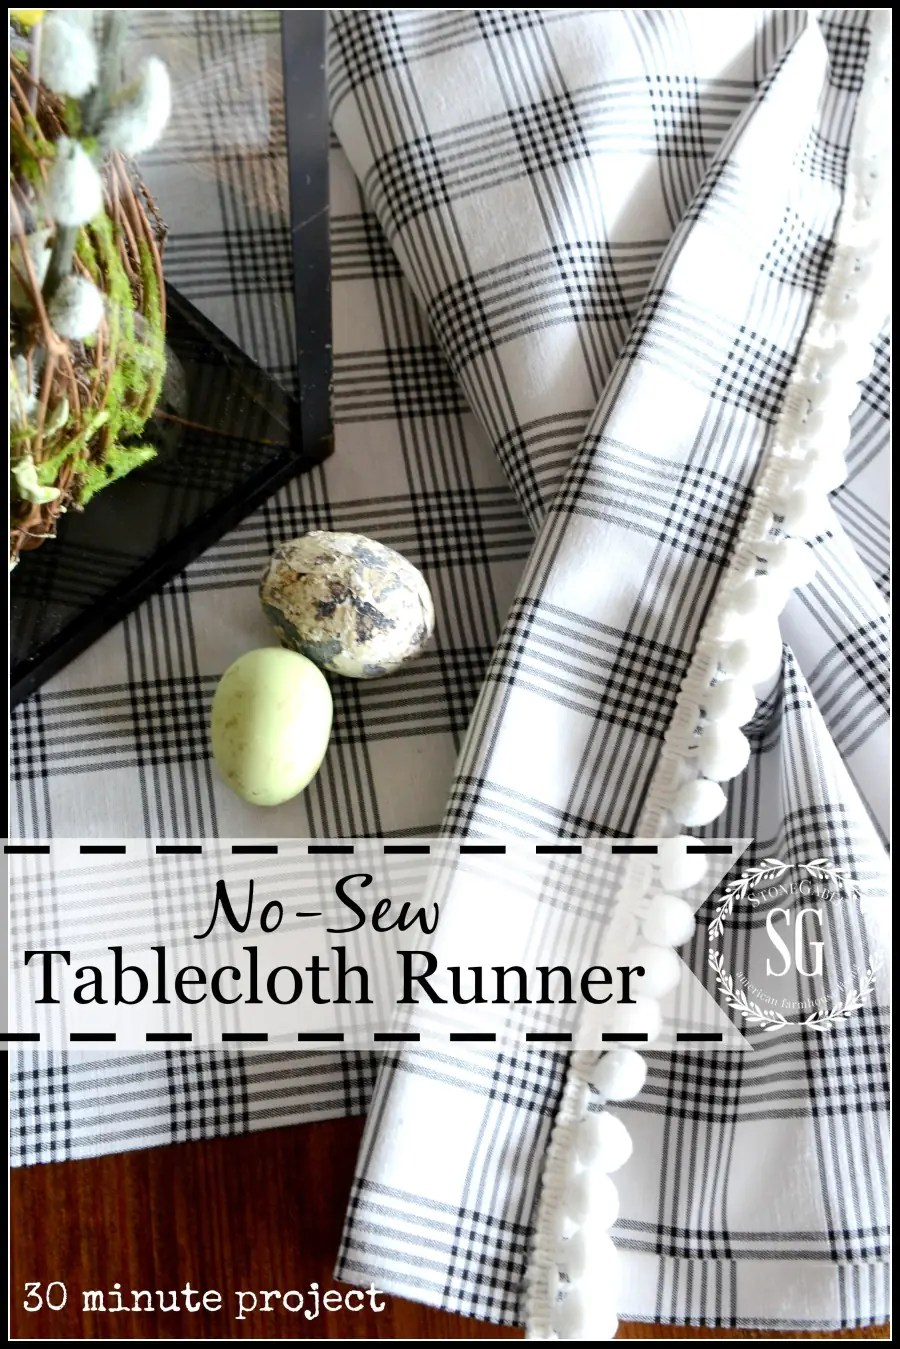 NO SEW TABLECLOTH RUNNER A 30 Minute Project StoneGable